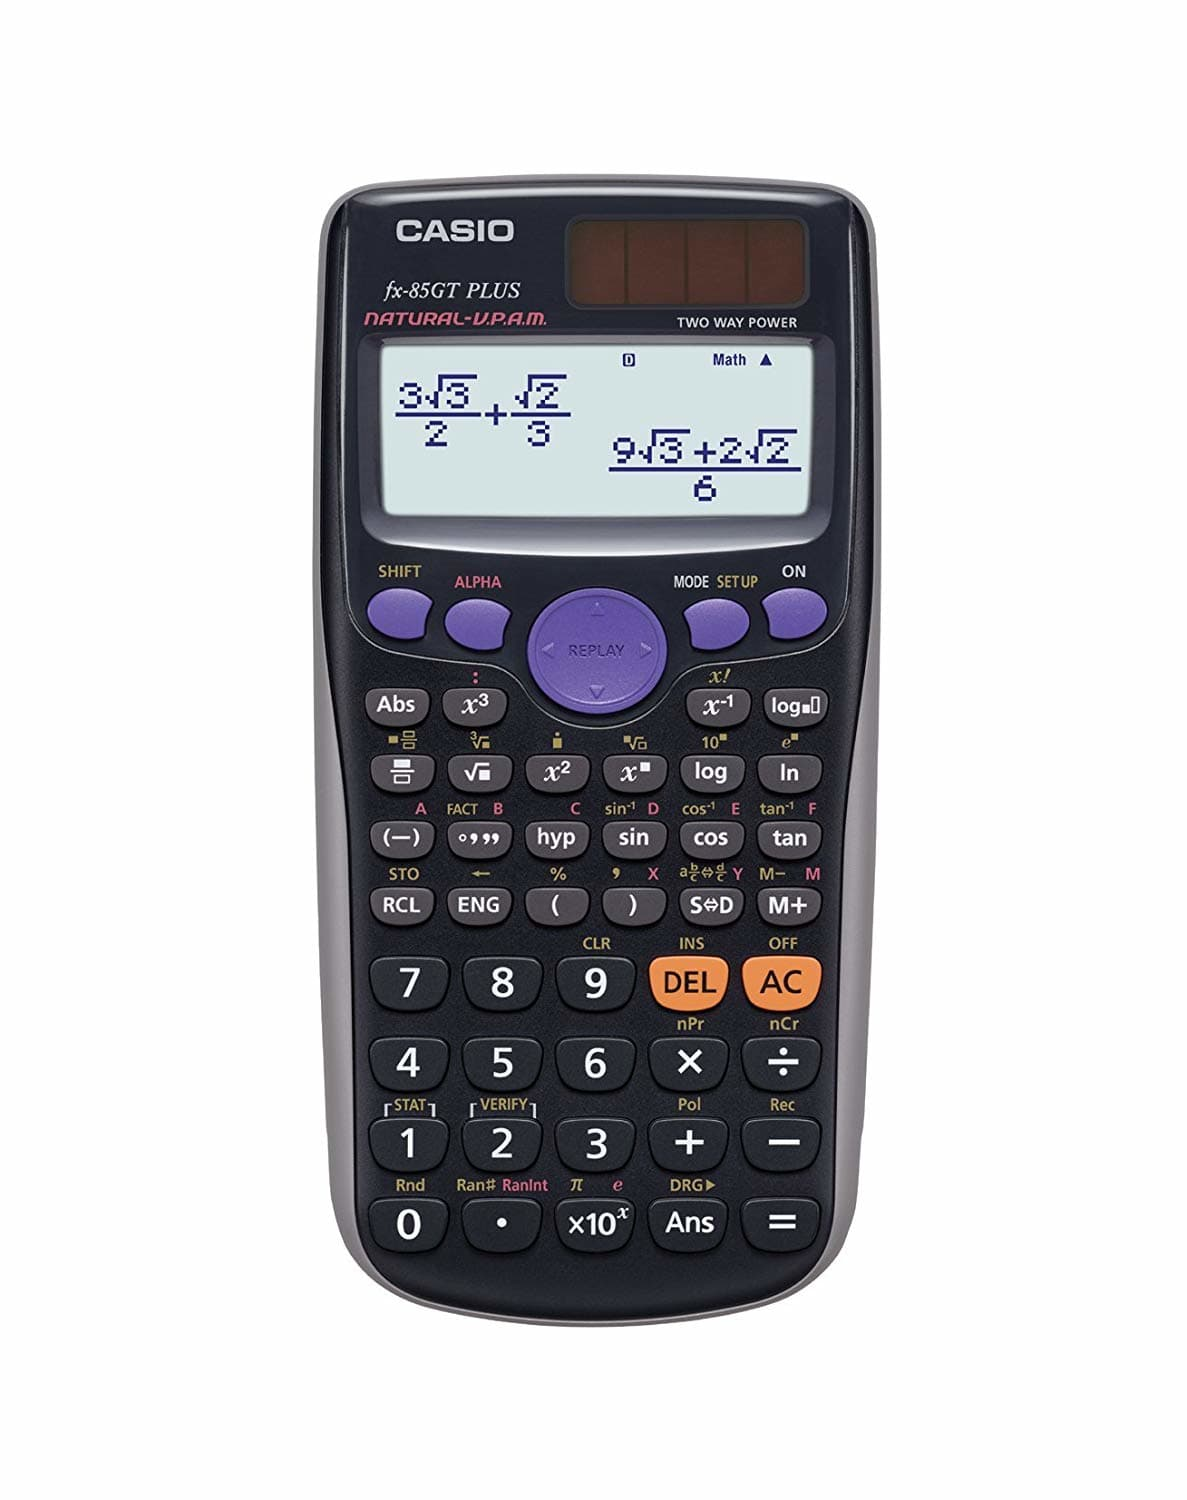 GCSE Maths Calculator FX-85GT